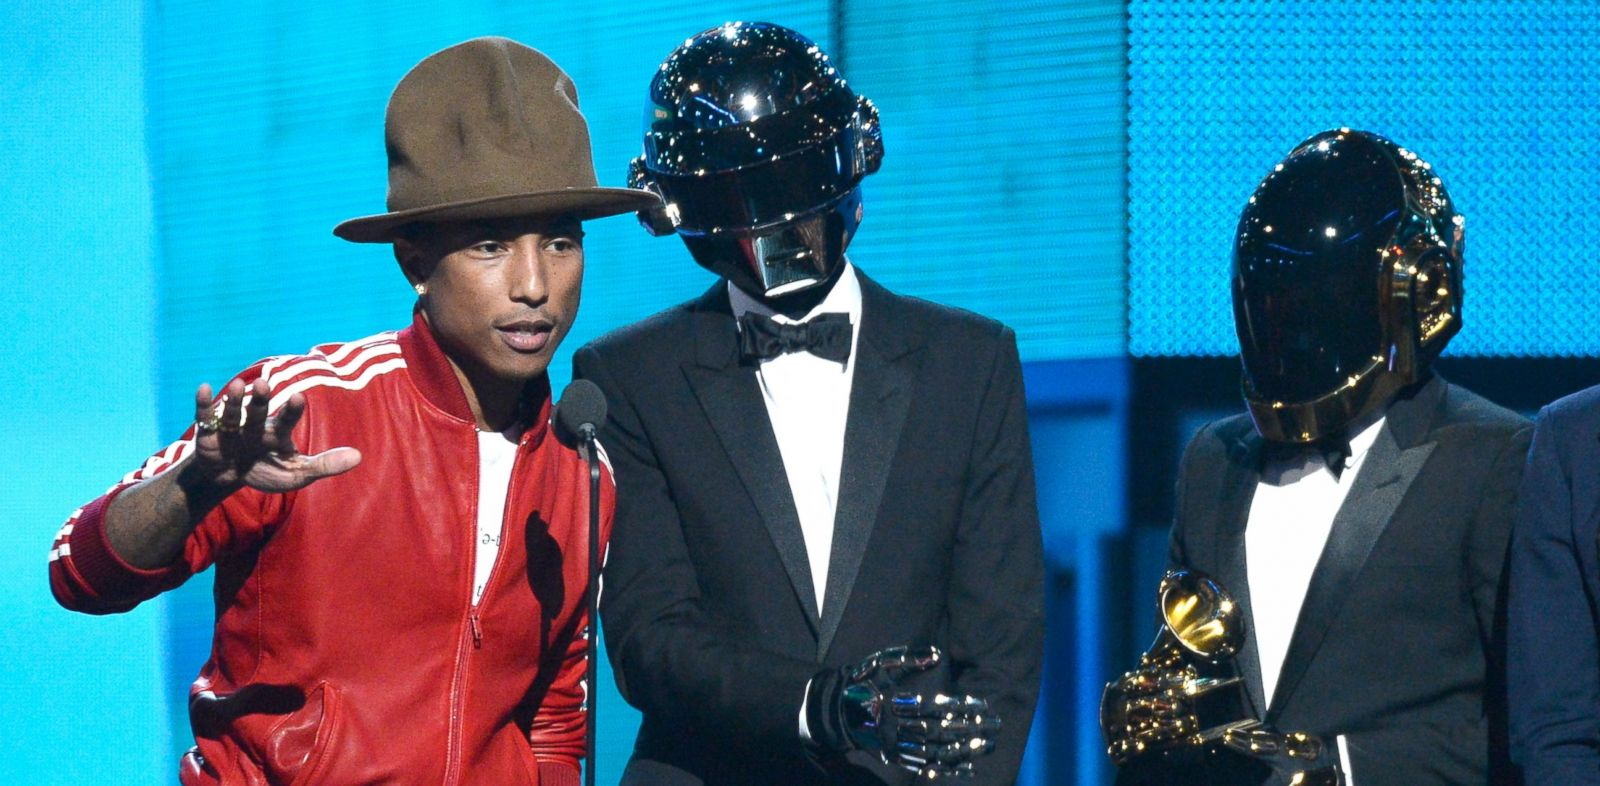 PHOTO: From left, Pharrell Williams is pictured with Thomas Bangalter and Guy-Manuel de Homem-Christo of Daft Punk during the 56th GRAMMY Awards on Jan. 26, 2014 in Los Angeles, Calif.